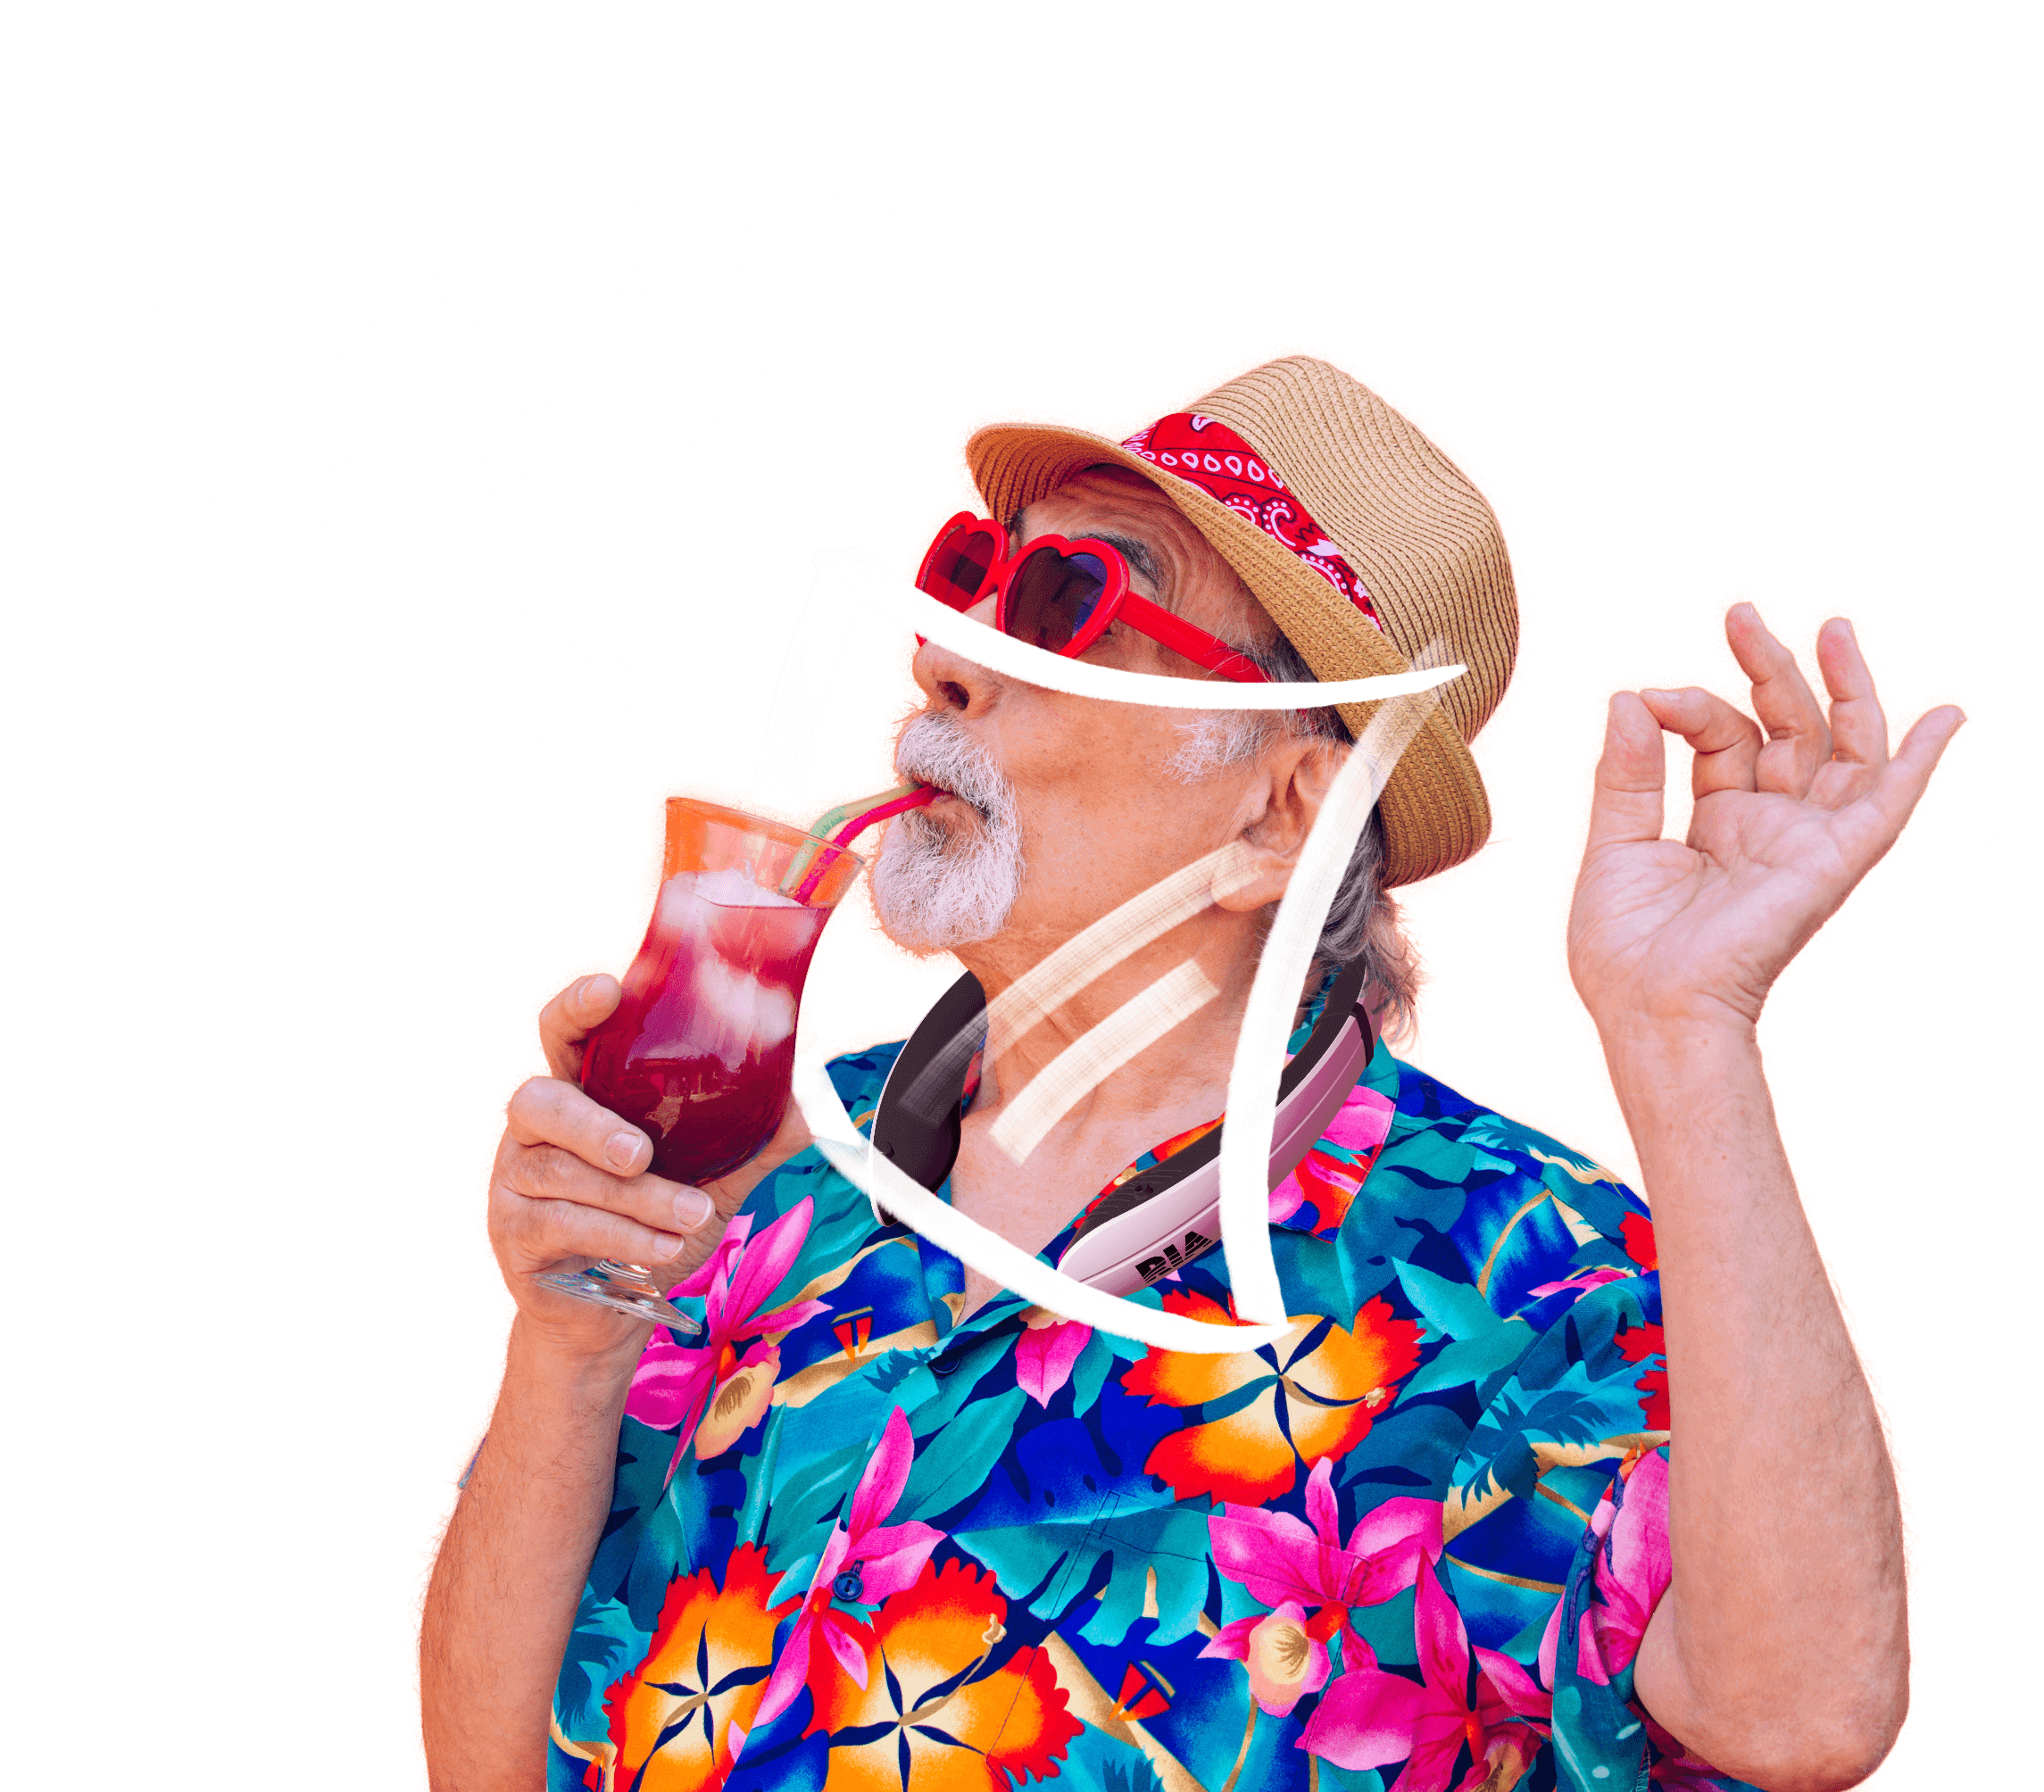 Man drinking punch while wearing RIA and enjoying his personal clean zone